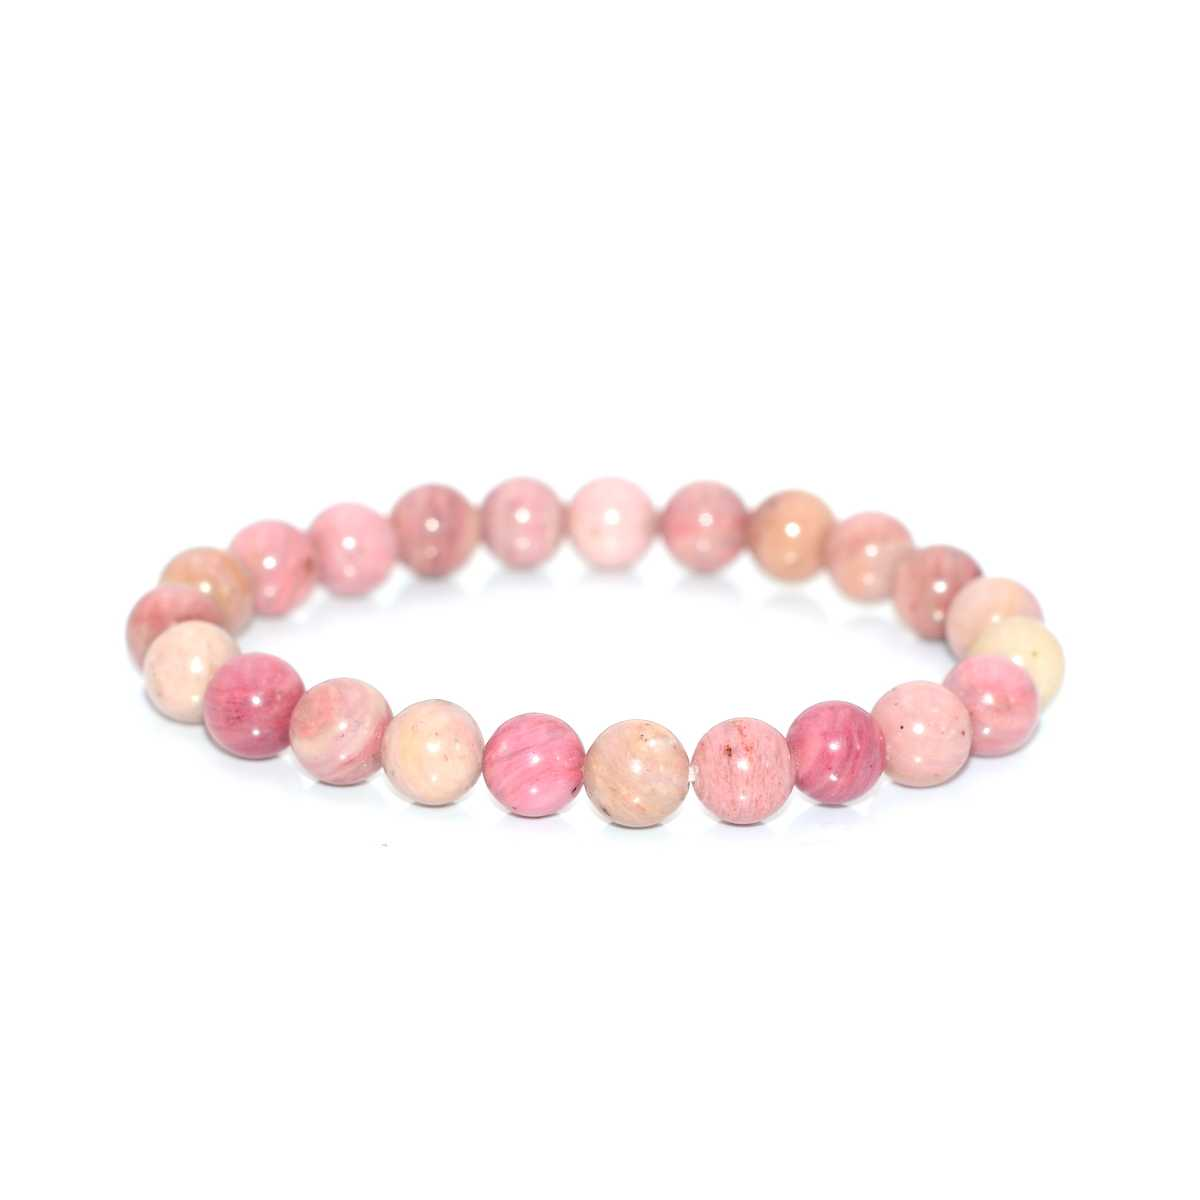 Natural Semi-precious Stone Pink Rhodonite Strands Bracelet for Women